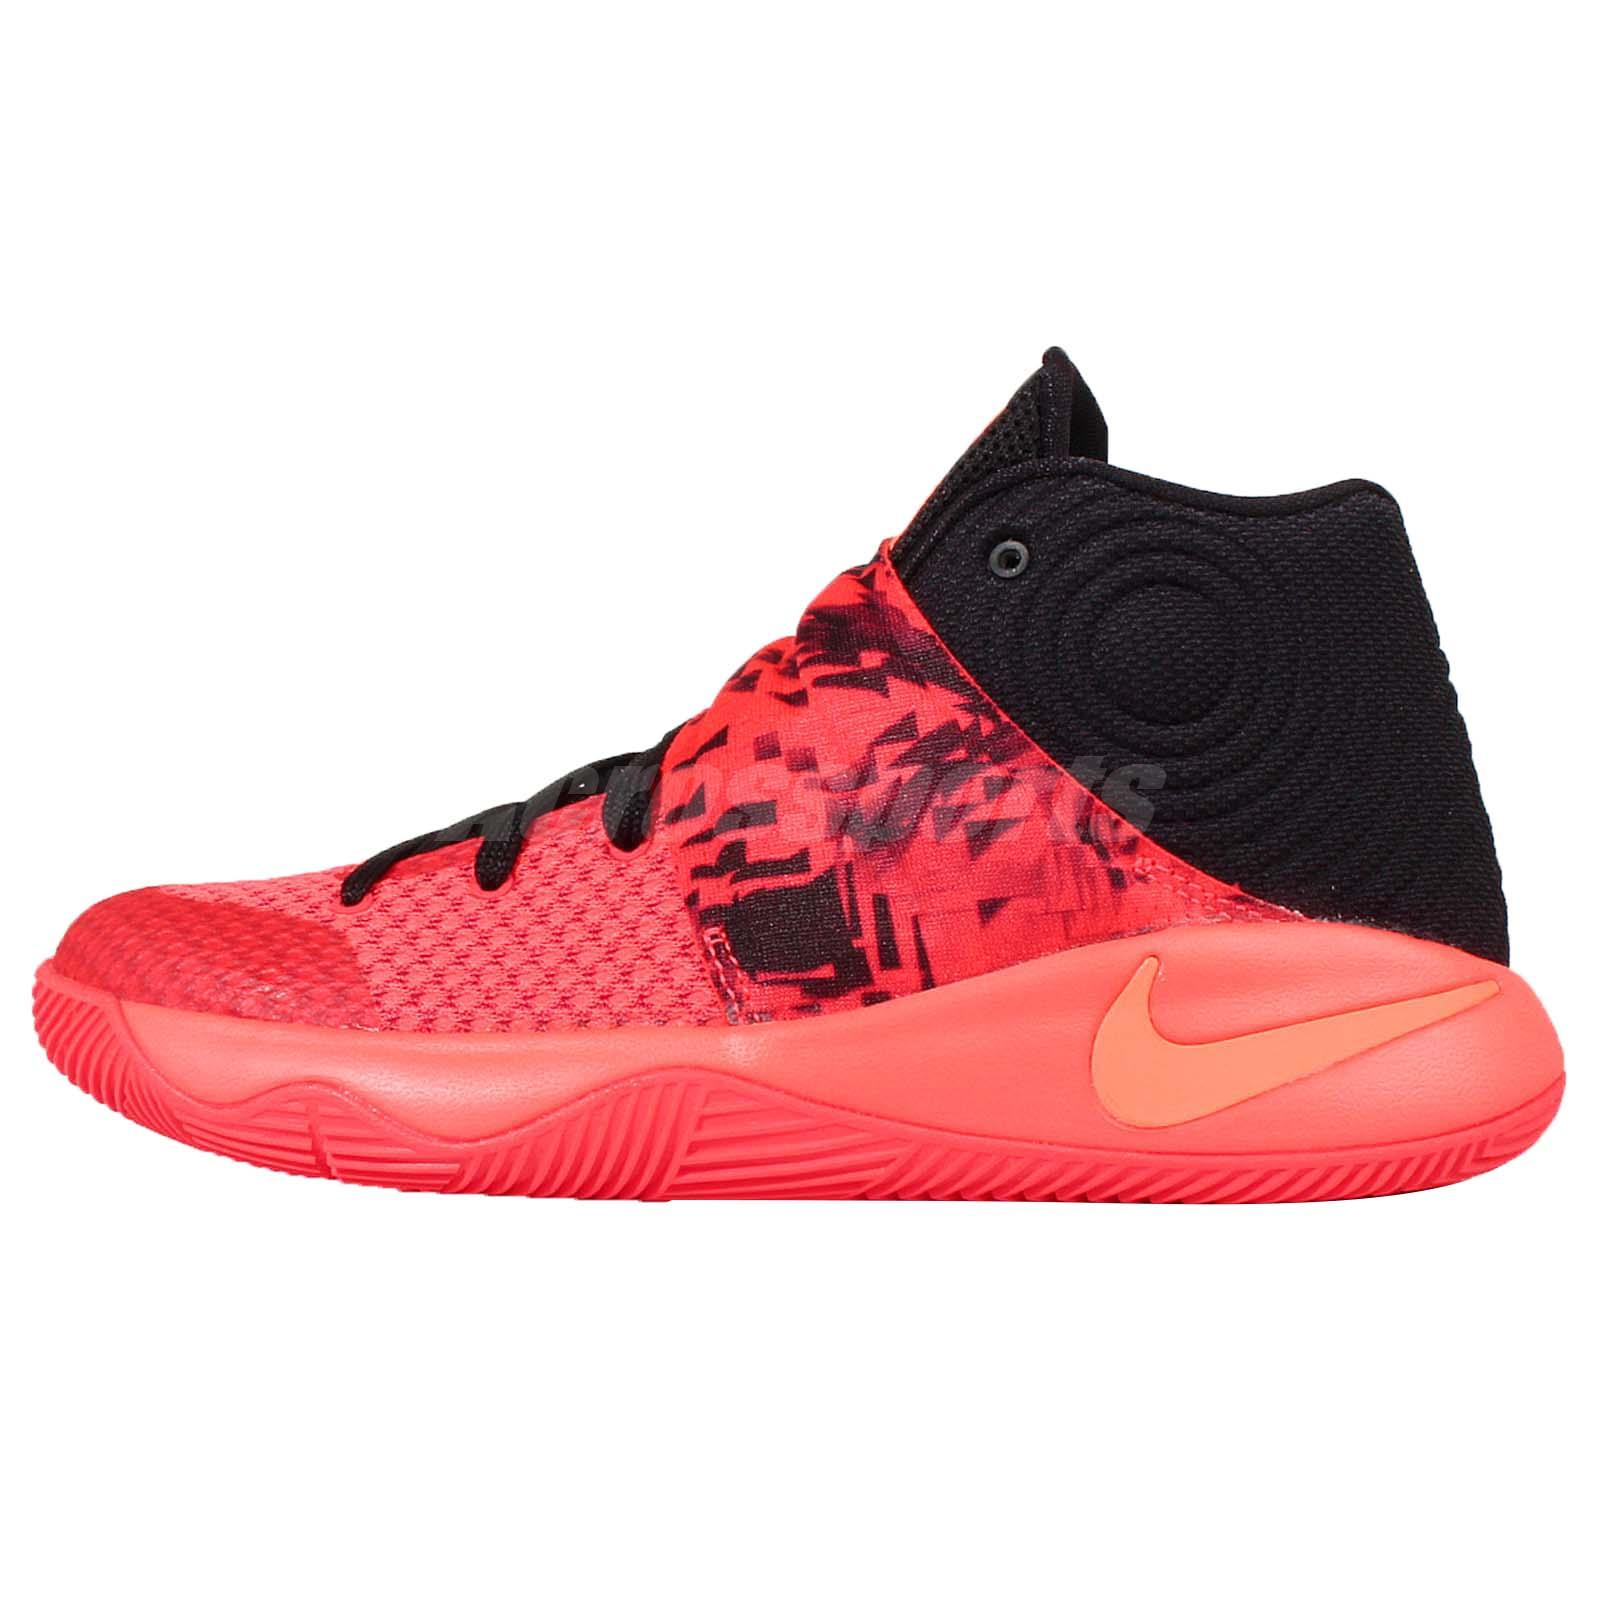 d4fe6957ee4 kids kyrie irving shoes